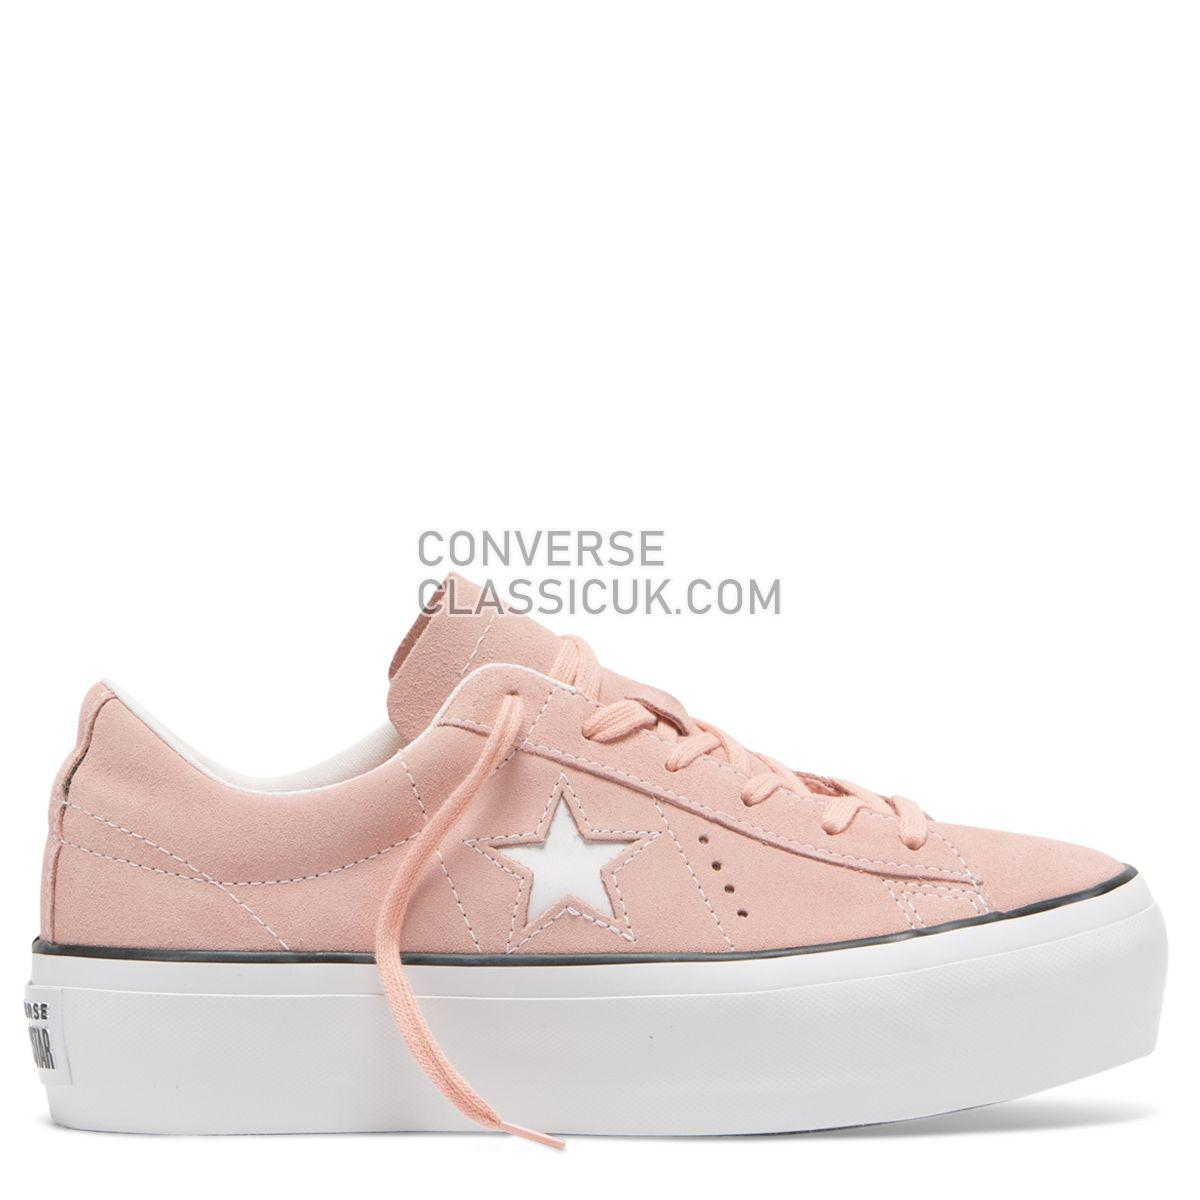 Converse One Star Platform Low Top Bleached Coral Womens 564382 Bleached Coral/Black/White Shoes